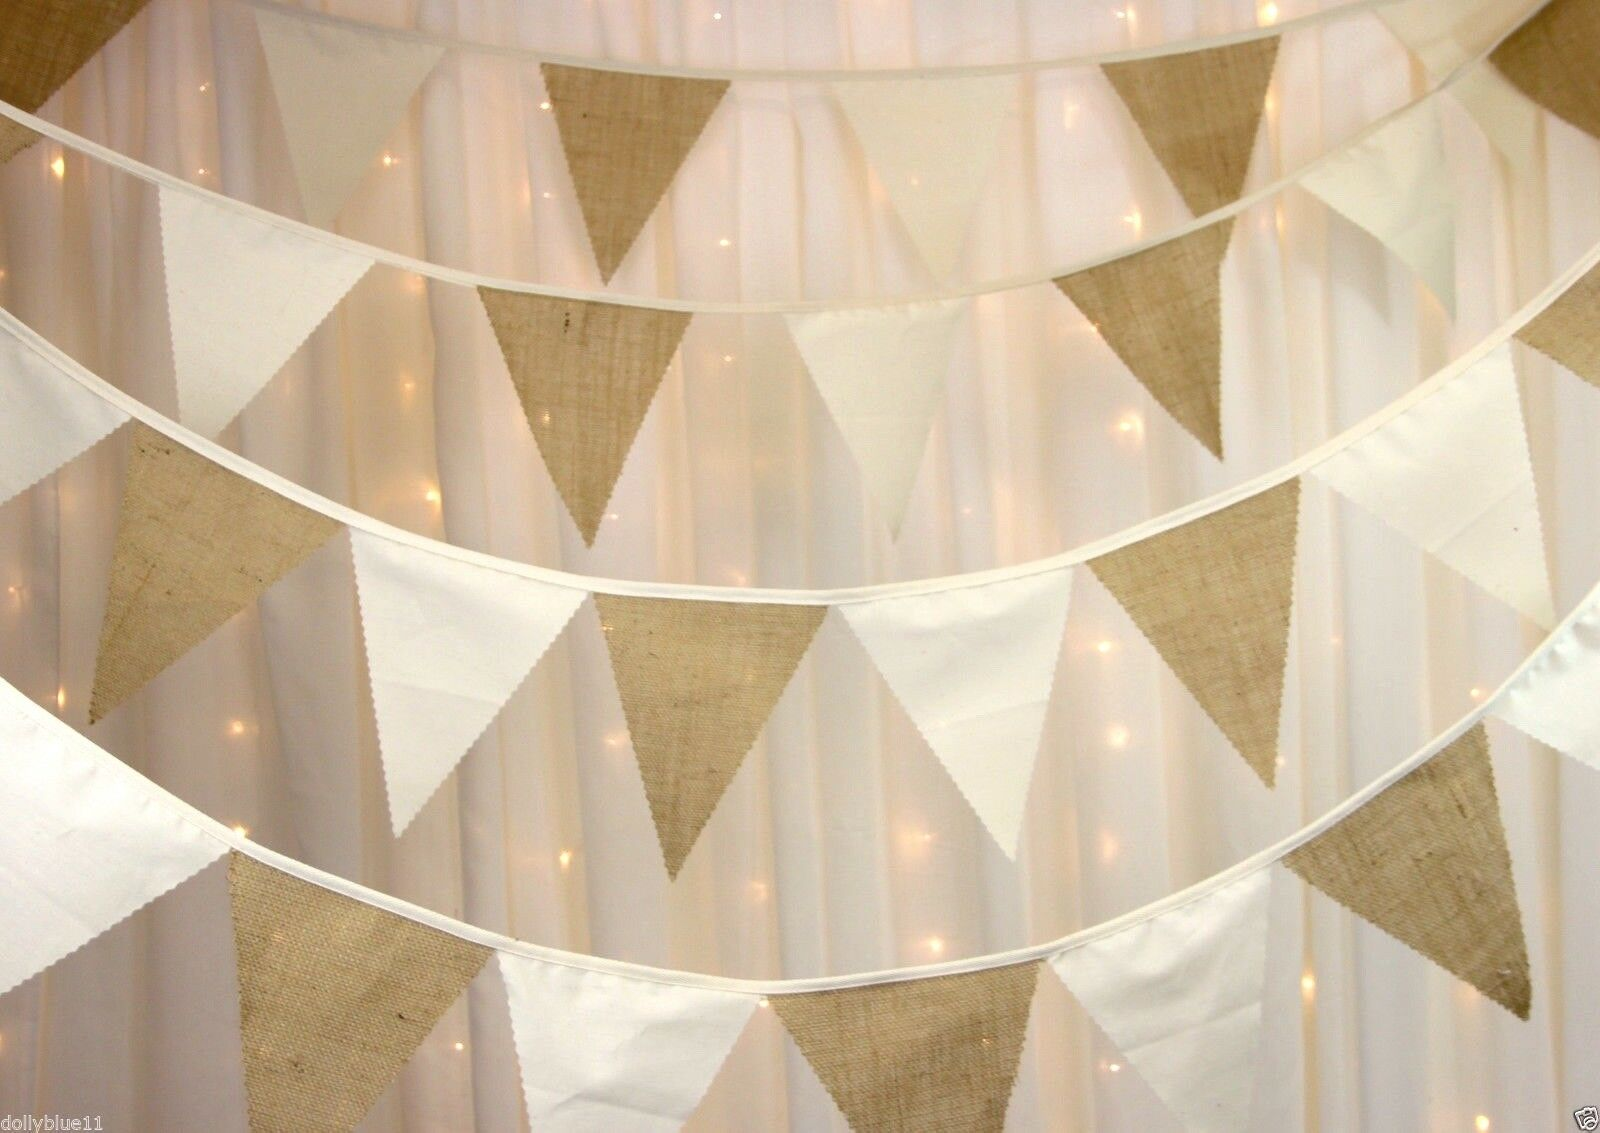 Bunting with hessian burlap & natural calico barn weddings, rustic, vintage,